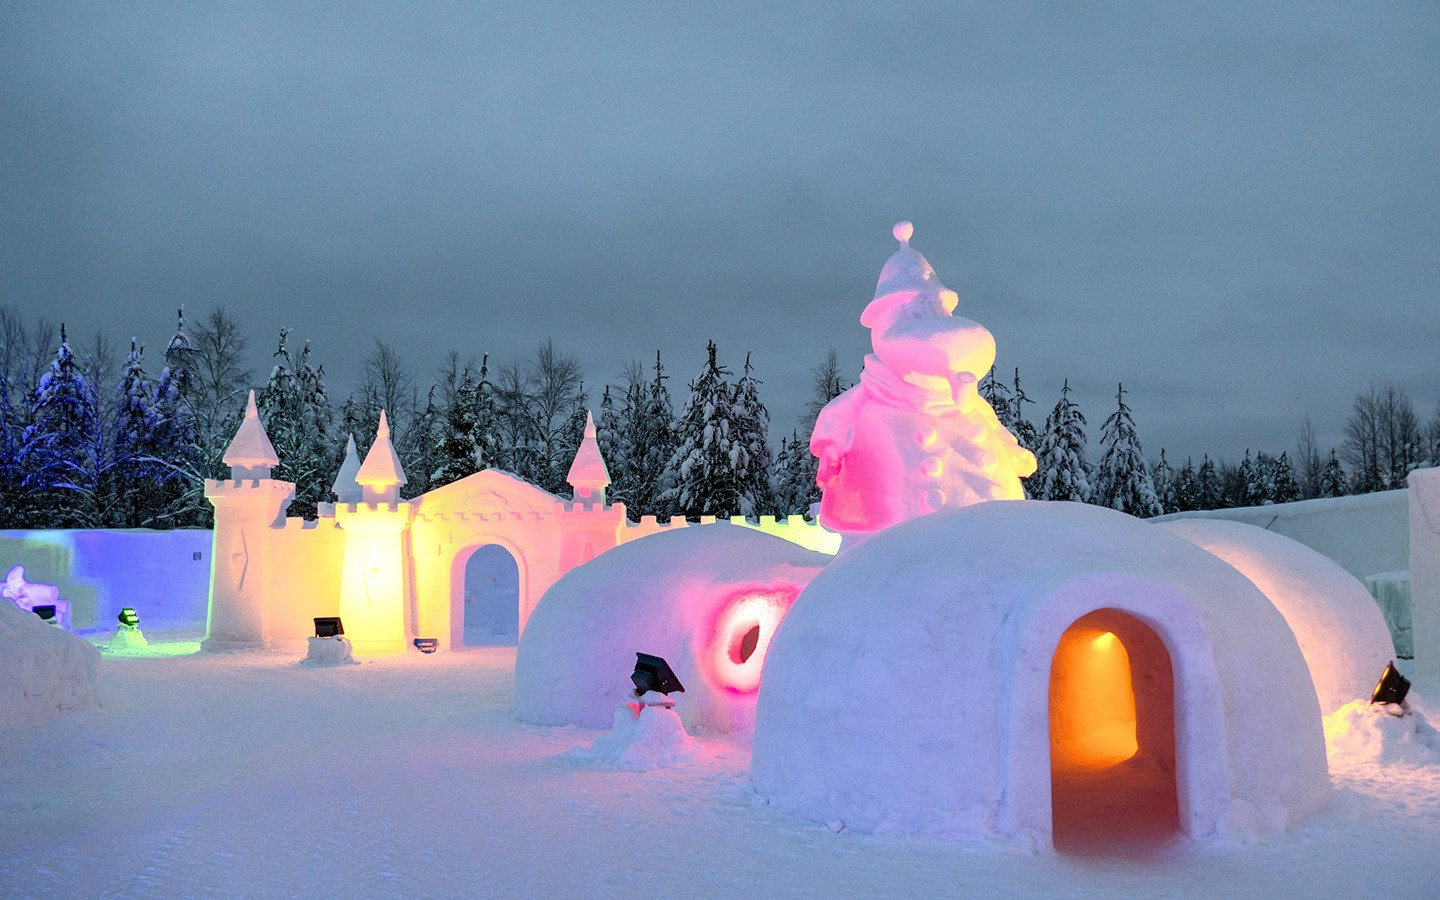 The Moomin Snow Castle in Santa Claus Village, Rovaniemi, Finland